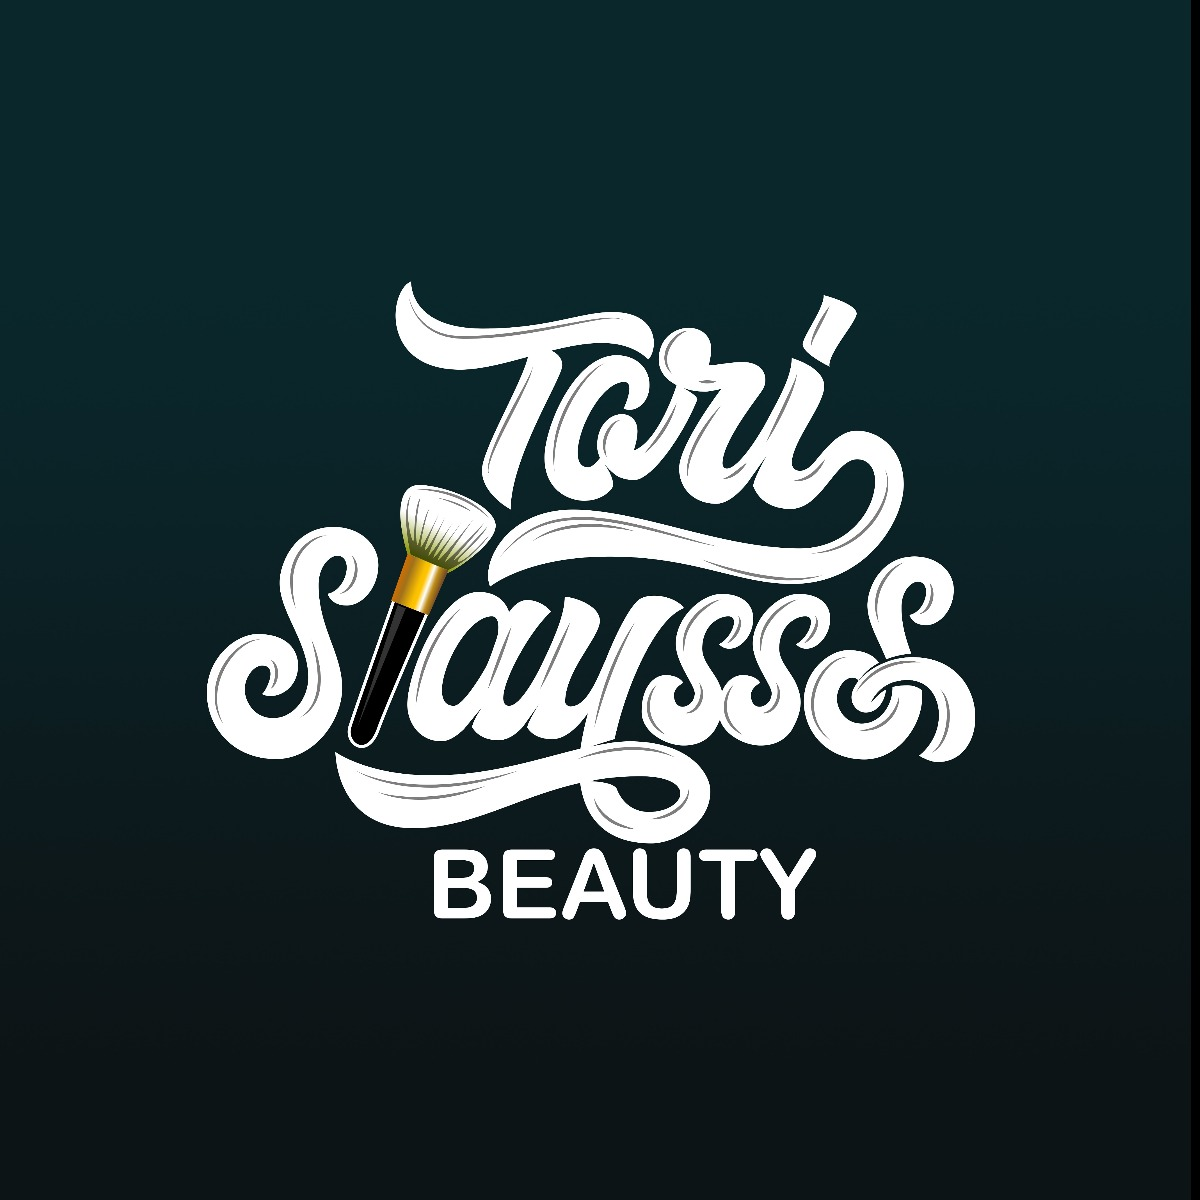 Tori_slaysss Profile Picture